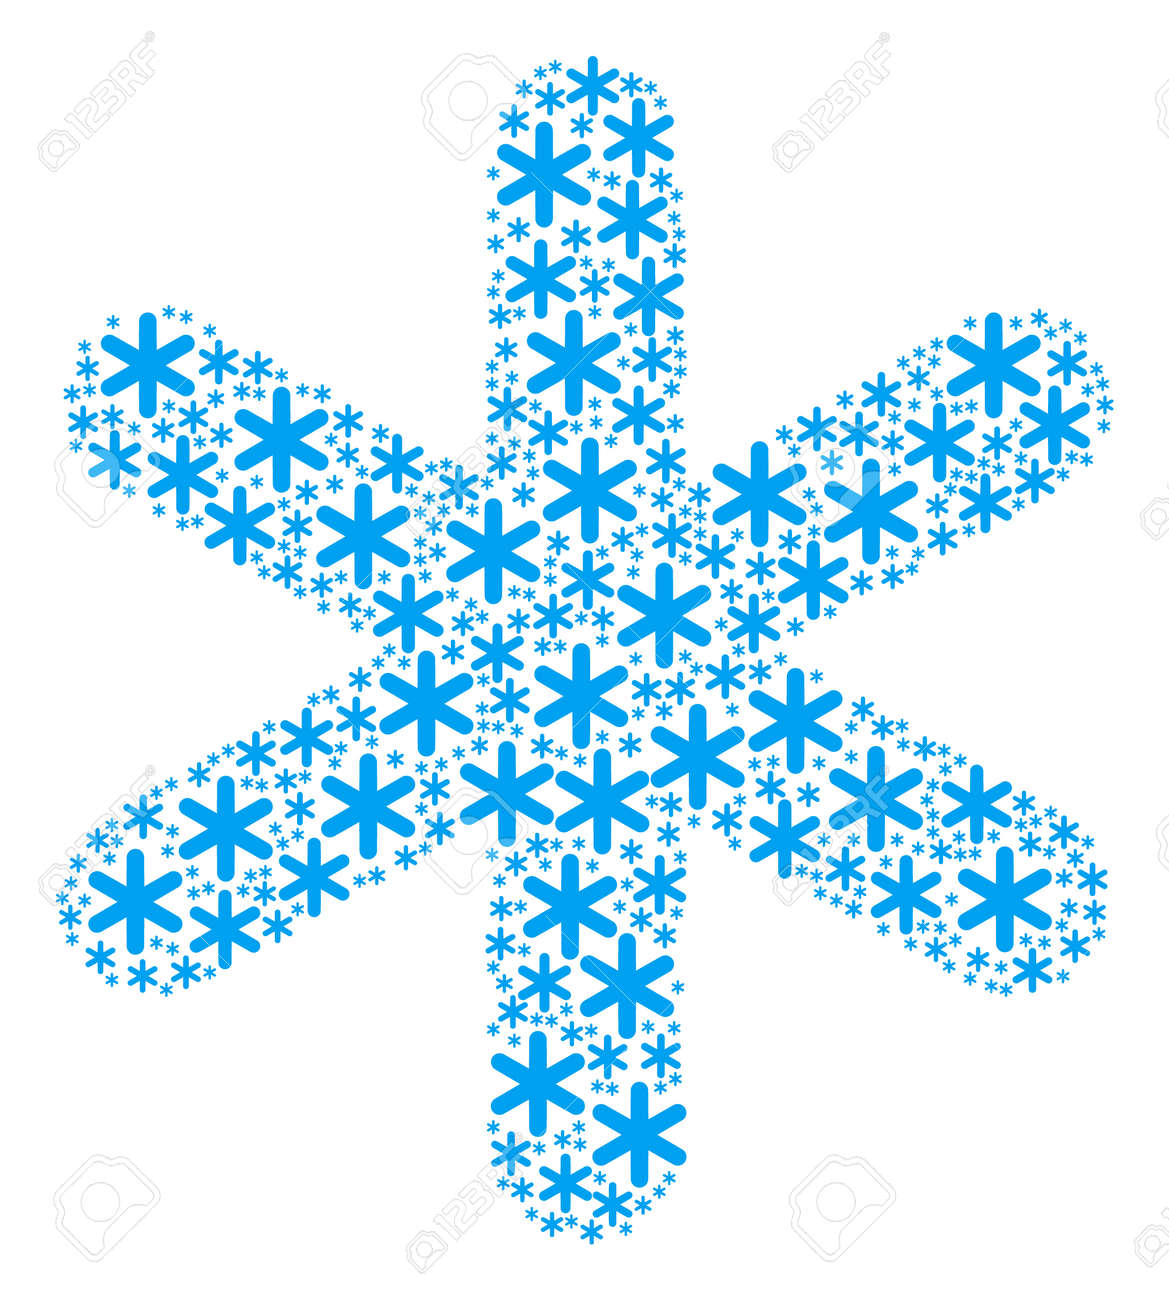 Snowflake pattern combined in the group of snowflake icons  Vector